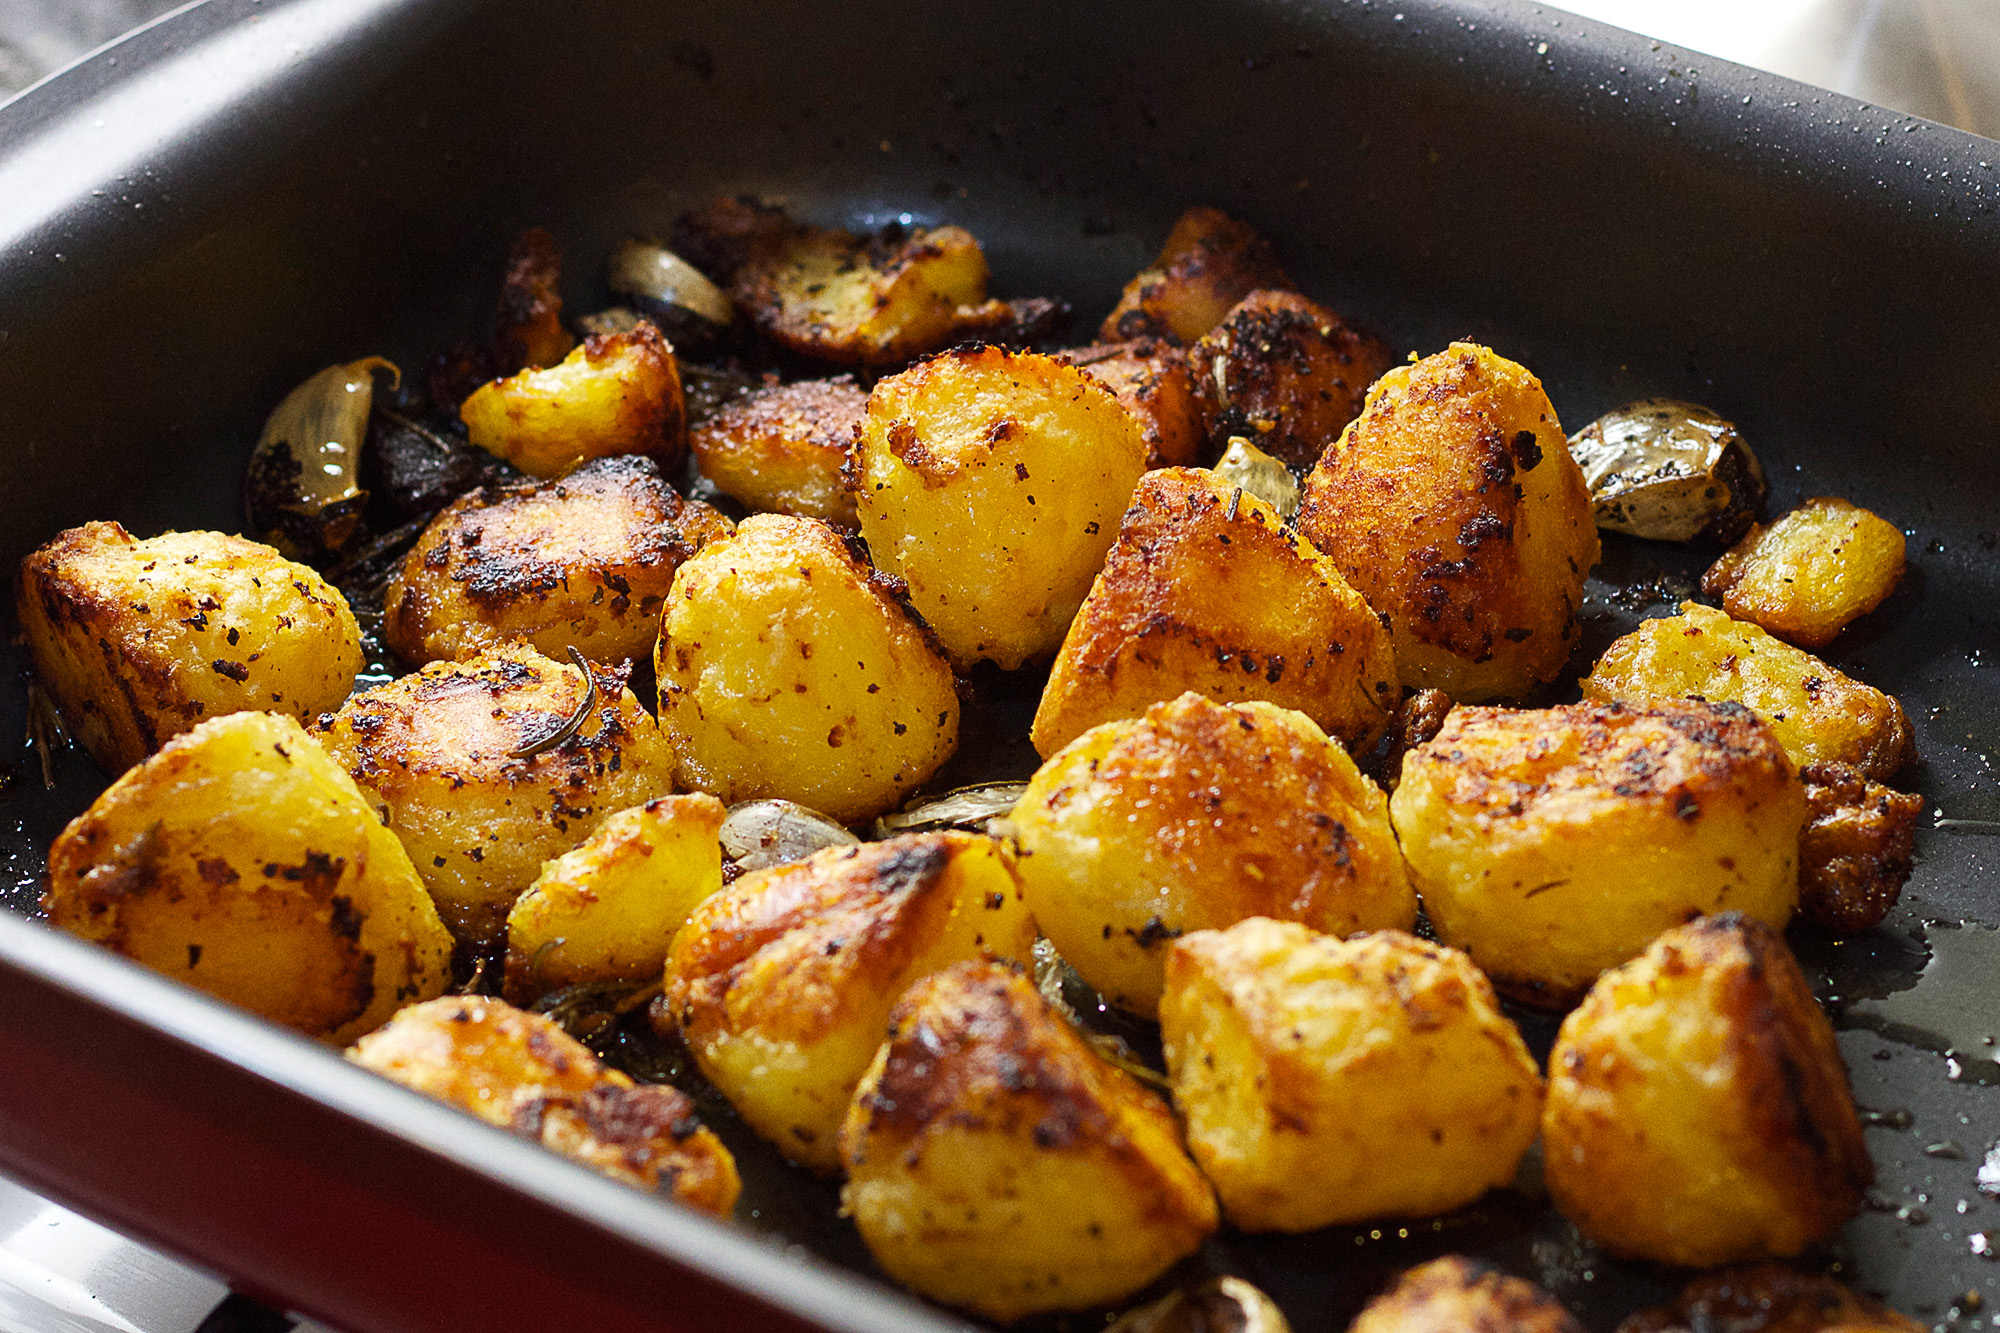 potatoes, roasted, yummy, dinner, food & drinks